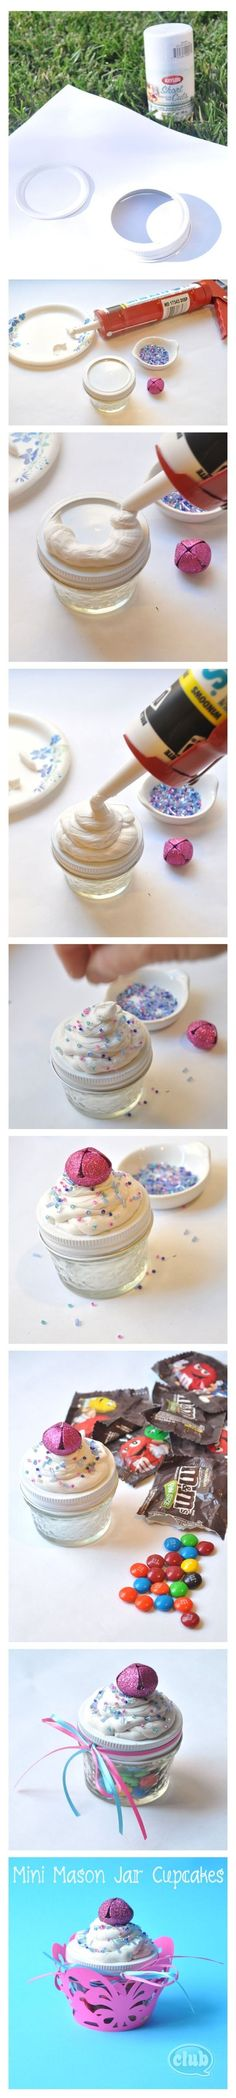 DIY Cupcake Mason Jar Candy Holders diy craft crafts craft ideas easy crafts diy ideas diy crafts crafty easy diy home crafts mason jars mason jar crafts Mason Jar Candy, Mini Mason Jars, Pot Mason Diy, Mason Jar Crafts, Cute Crafts, Crafts To Do, Easy Crafts, Fork Crafts, Kid Crafts